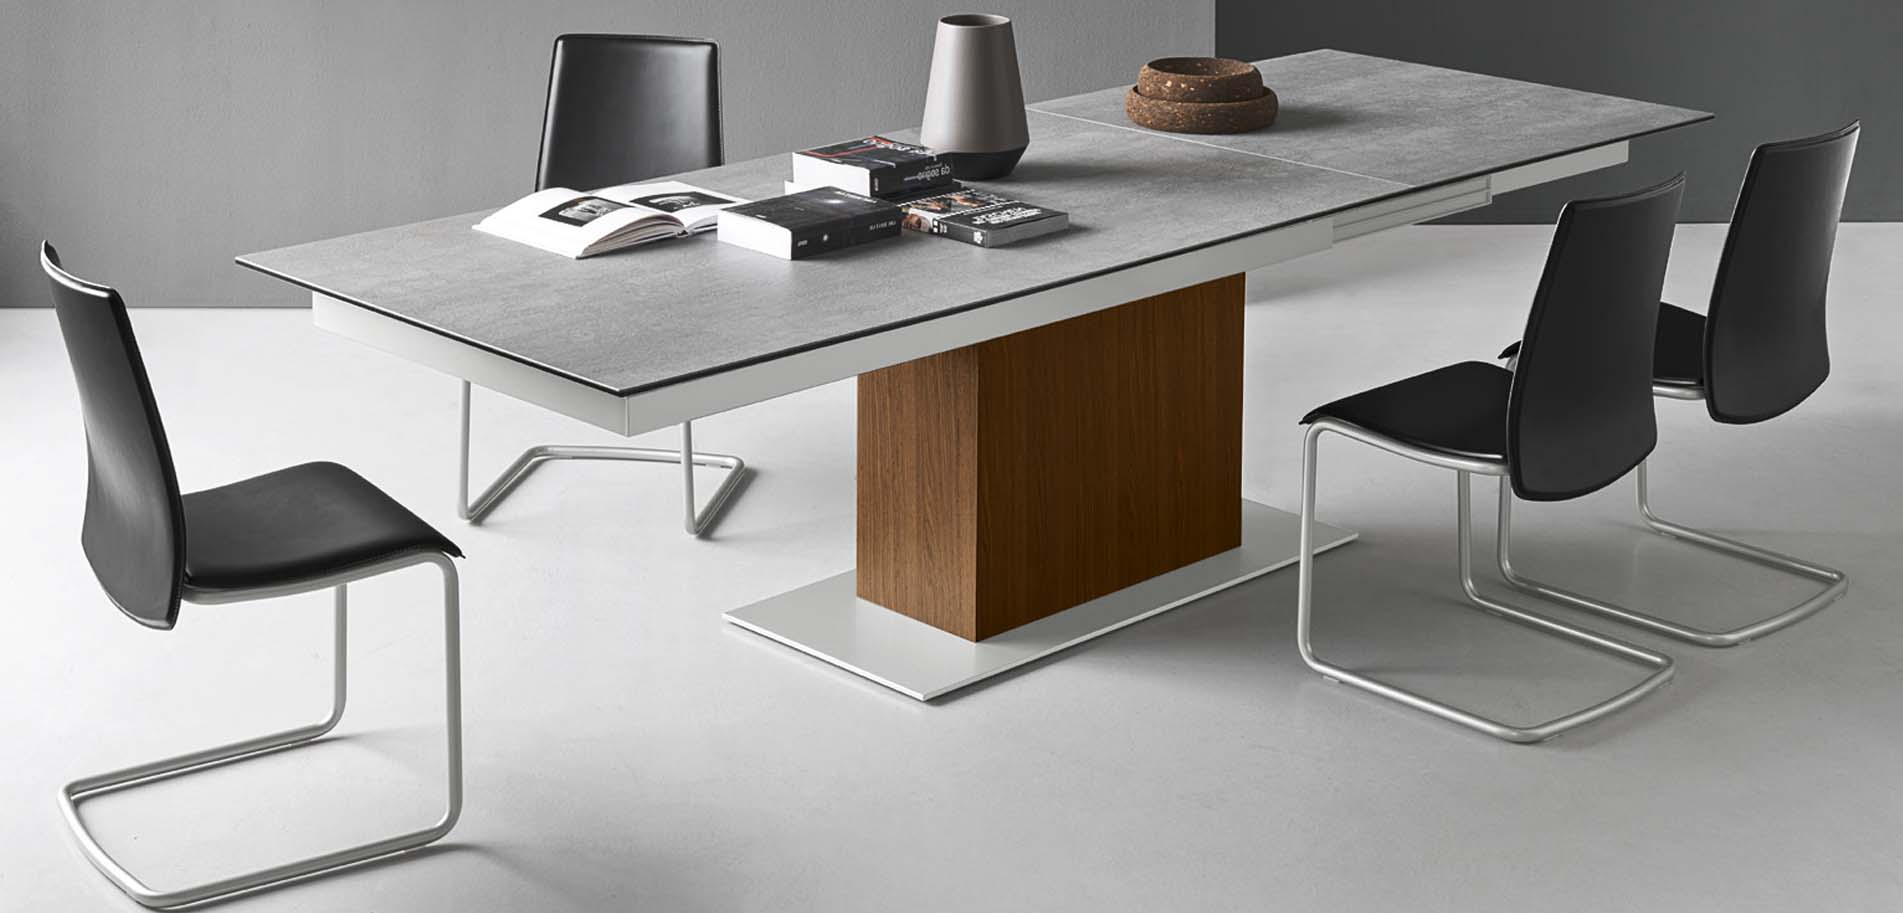 Wundervoll Connubia Calligaris Beste Wahl Τραπέζια ιταλικά